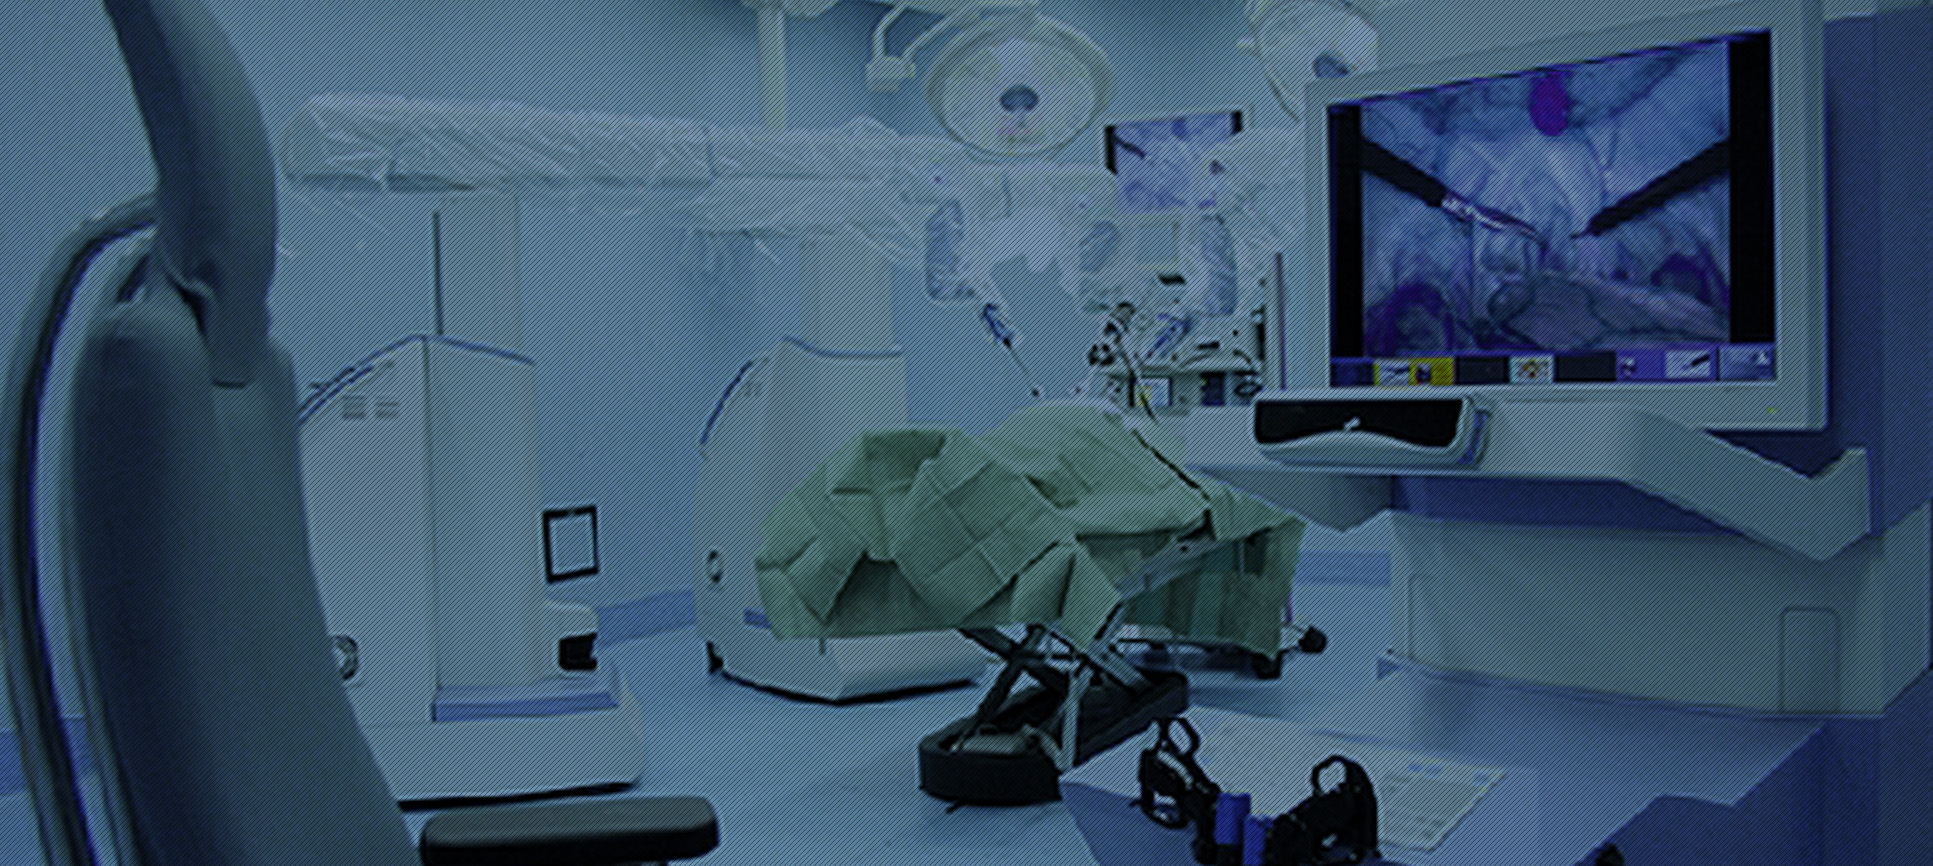 eye tracker Senhance Surgical Robotic System